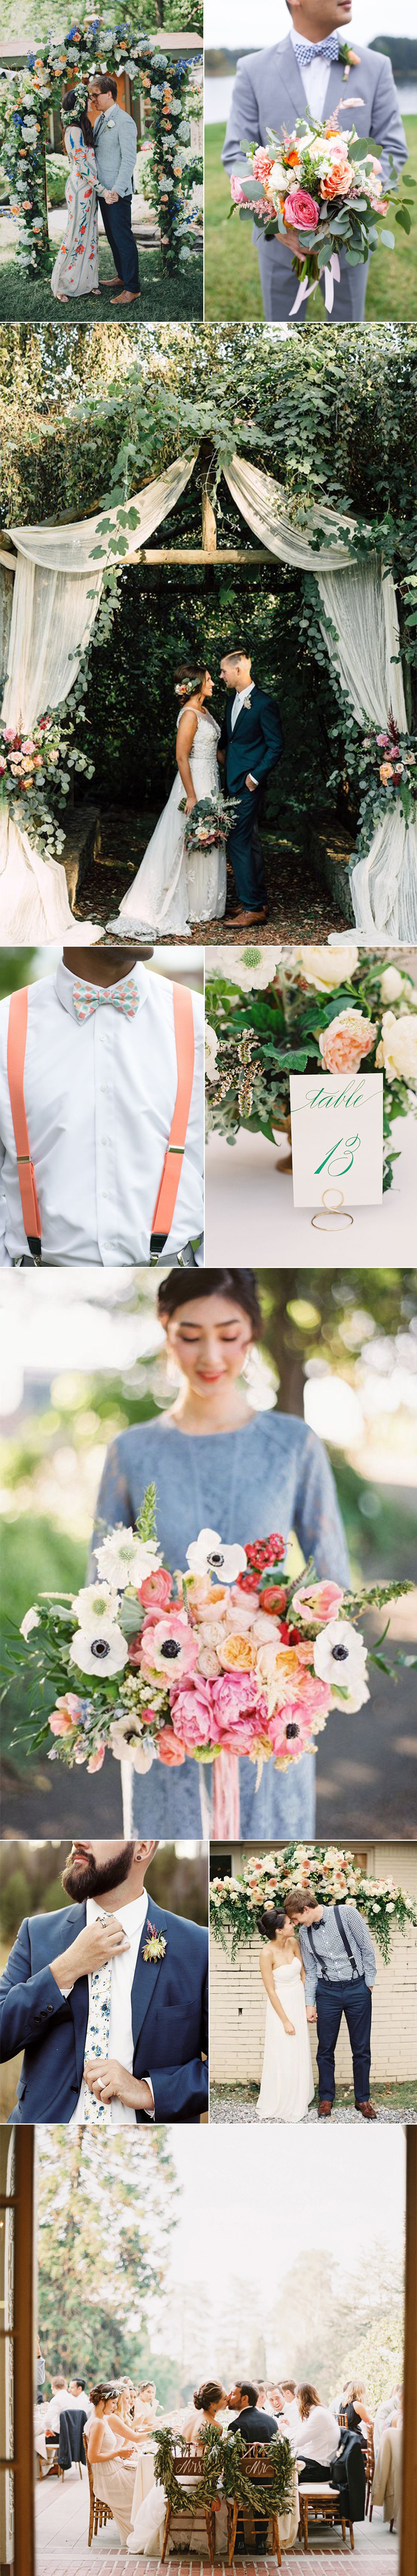 Joyful Garden Weddings